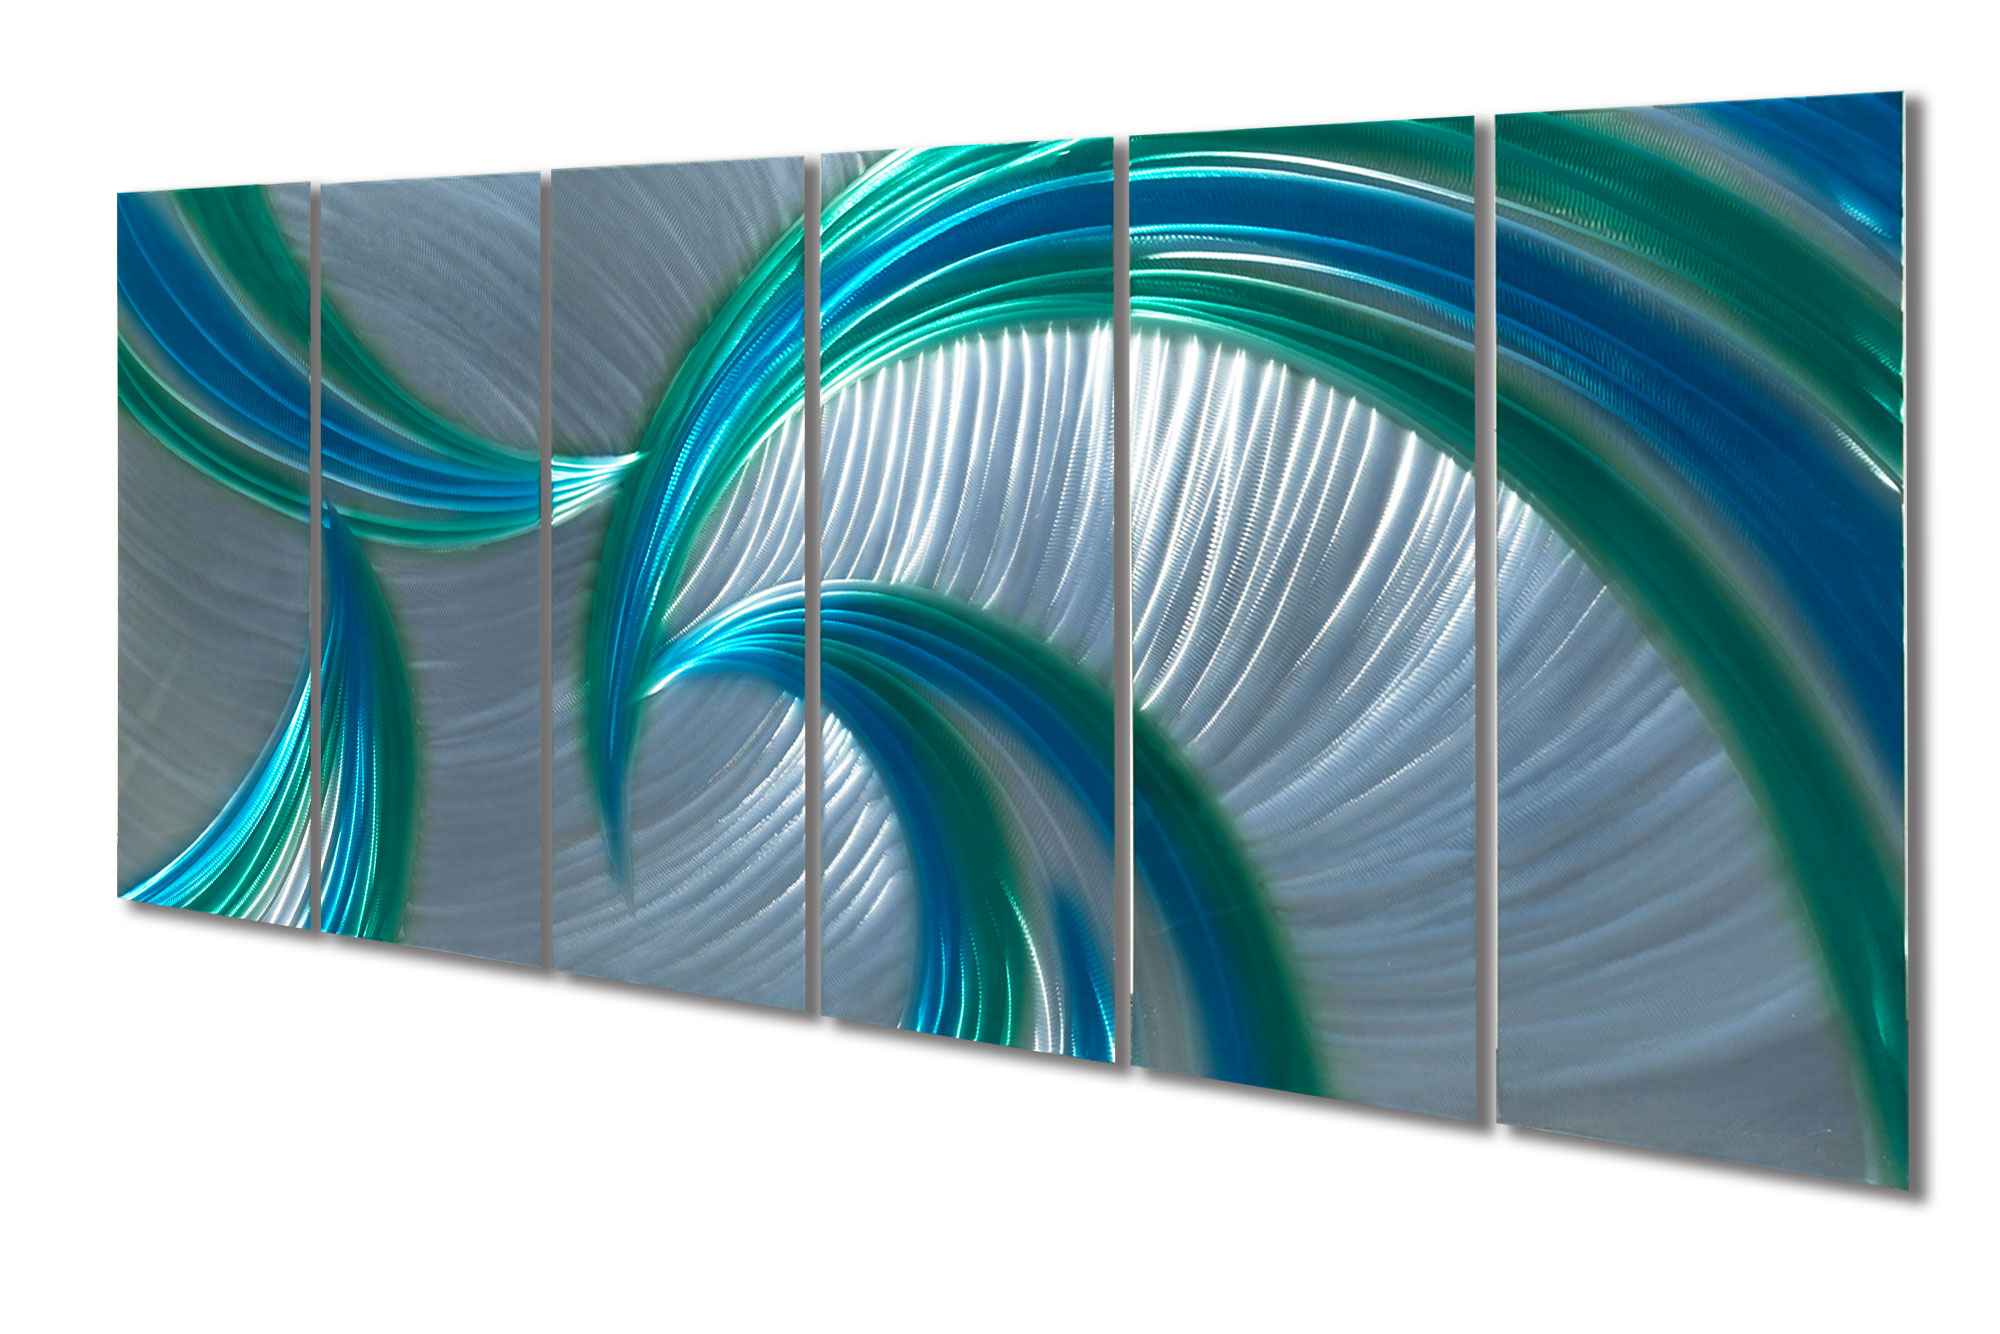 Blue Metal Wall Art New Tempest Blue Green 48X125  Metal Wall Art Abstract Sculpture 2018